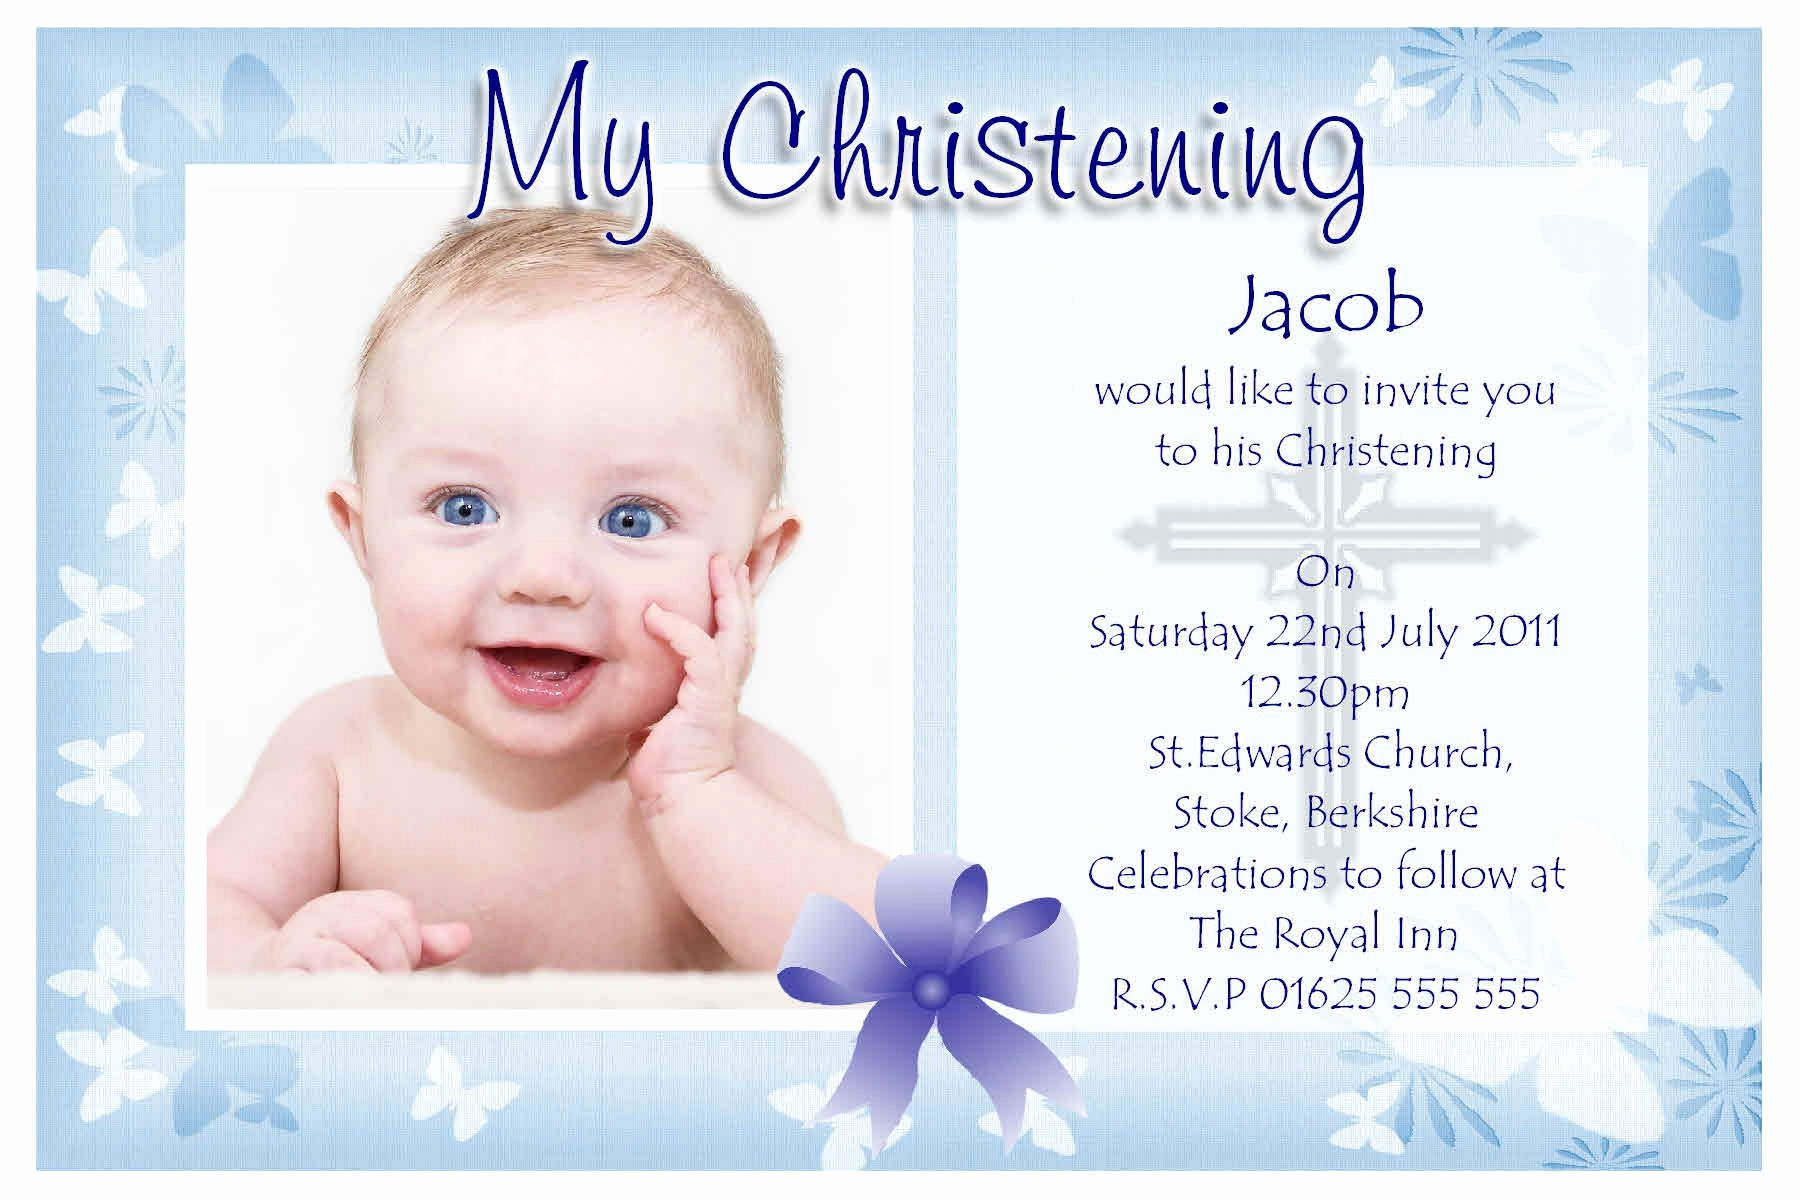 first birthday invitation quotes ; birthday-invitation-text-elegant-baby-boy-first-birthday-invitation-quotes-lovely-christening-and-of-birthday-invitation-text